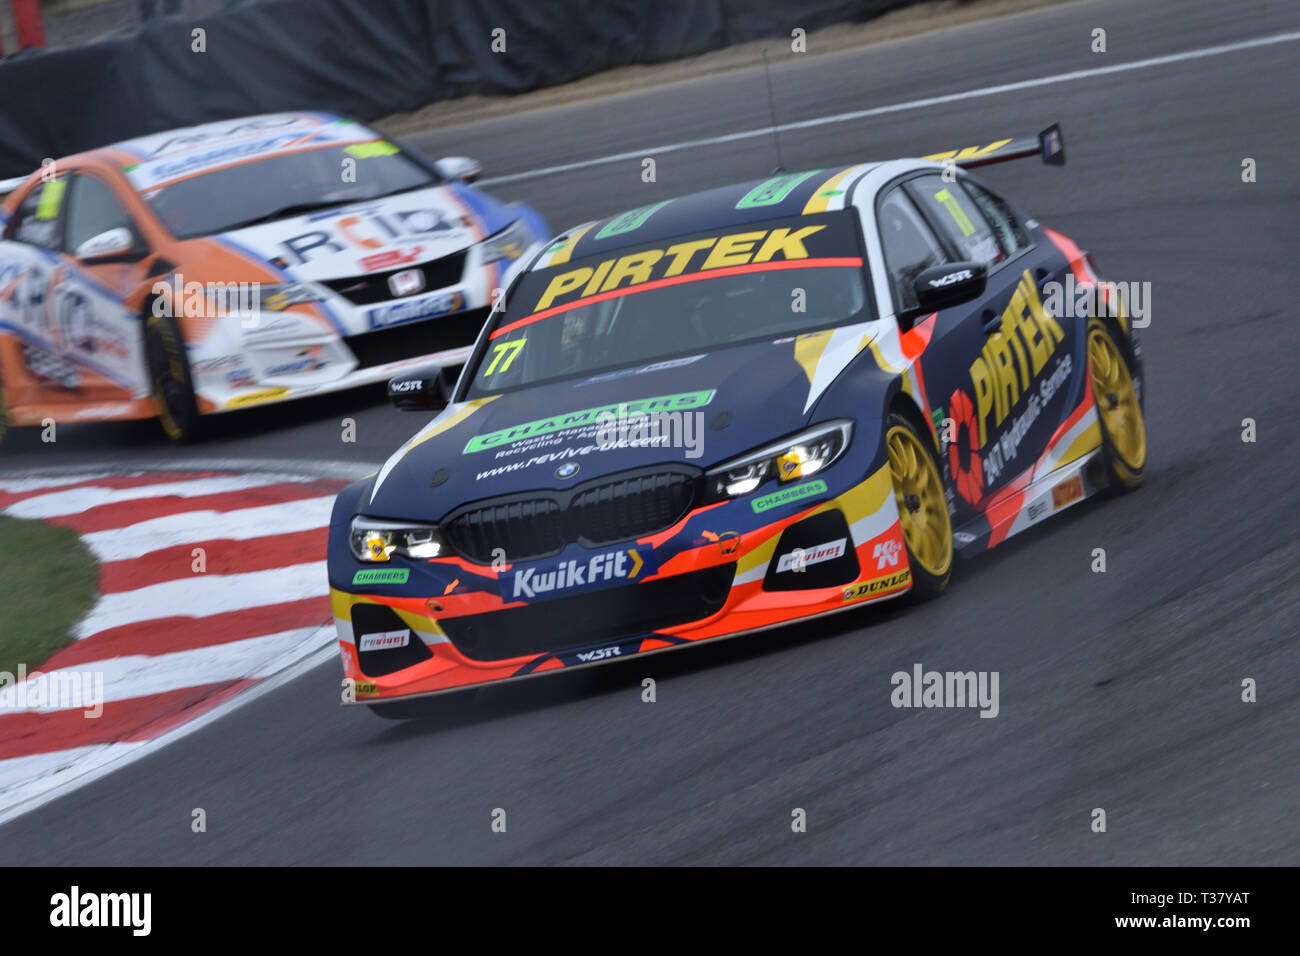 Andrew Jordans BMW 330i M-Sport touring car flying round druids with Sam Tordoffs car close behind. 6th april 2019, BTCC at brands hatch - Stock Image